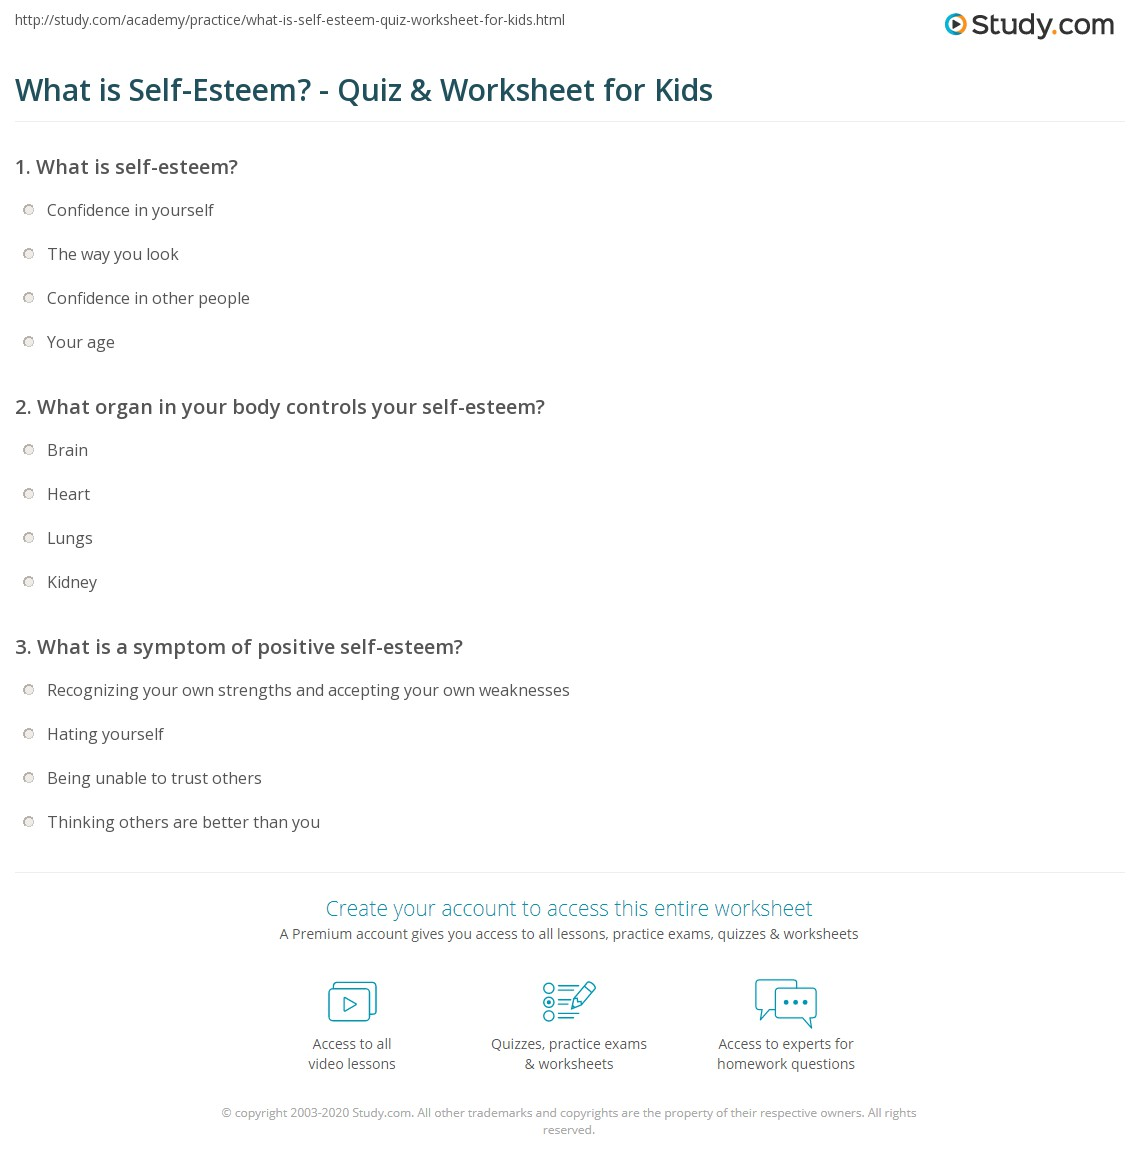 worksheet Printable Self Esteem Worksheets what is self esteem quiz worksheet for kids study com print definition lesson worksheet